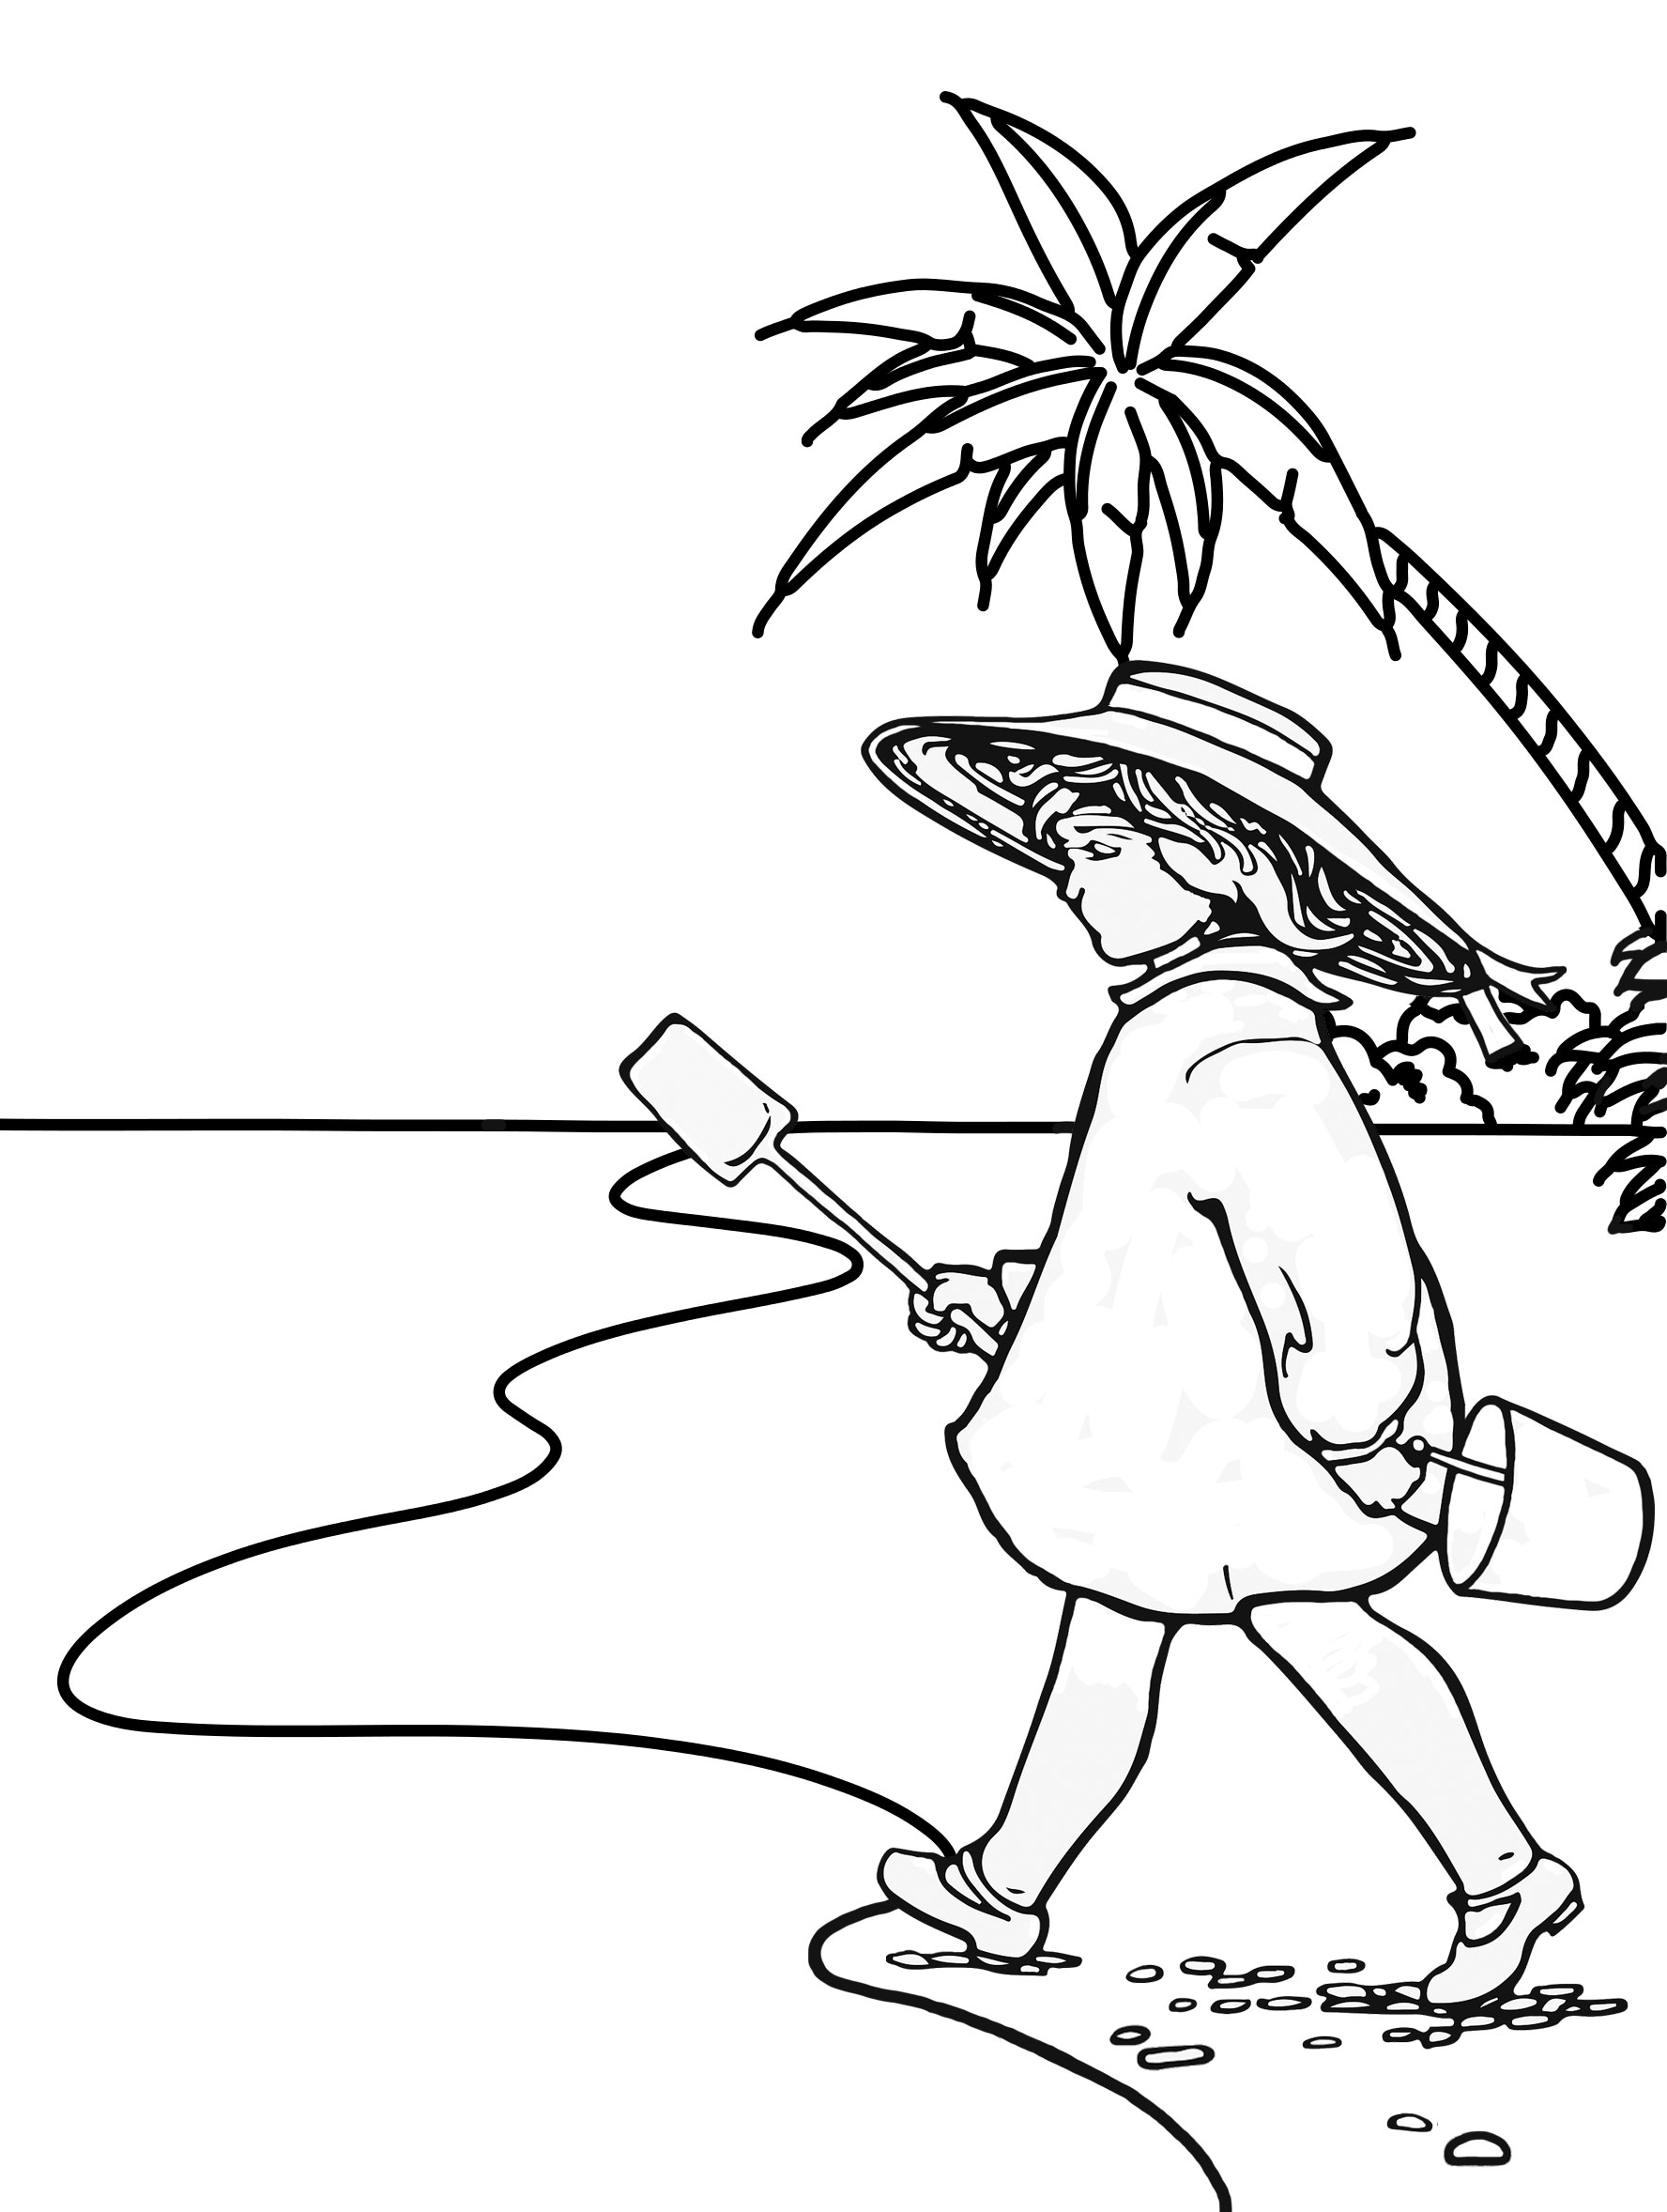 Picture to colour in of a girl walking along a beach with a bucket and spade